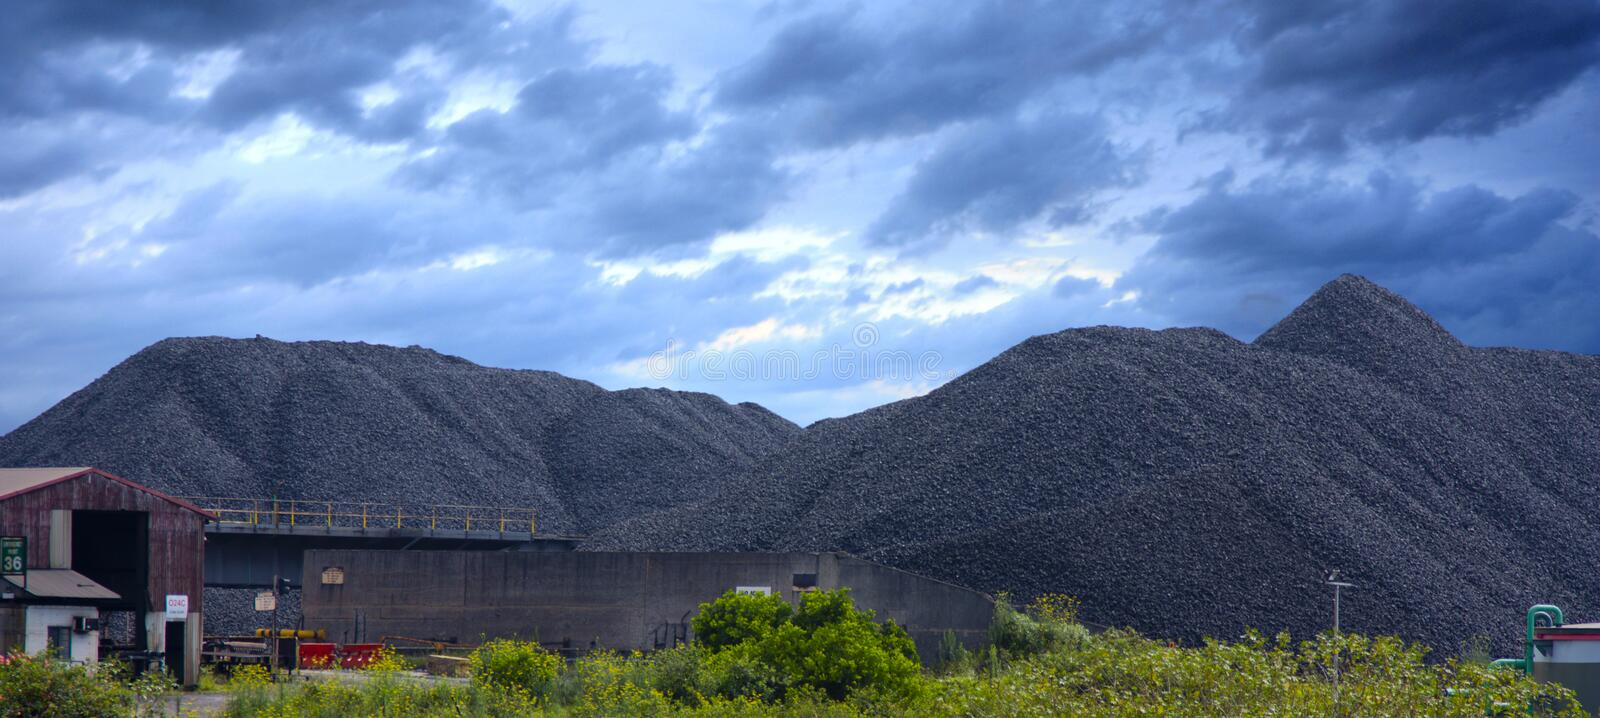 Coal mine. With stormy sky and bushes in foreground royalty free stock photo